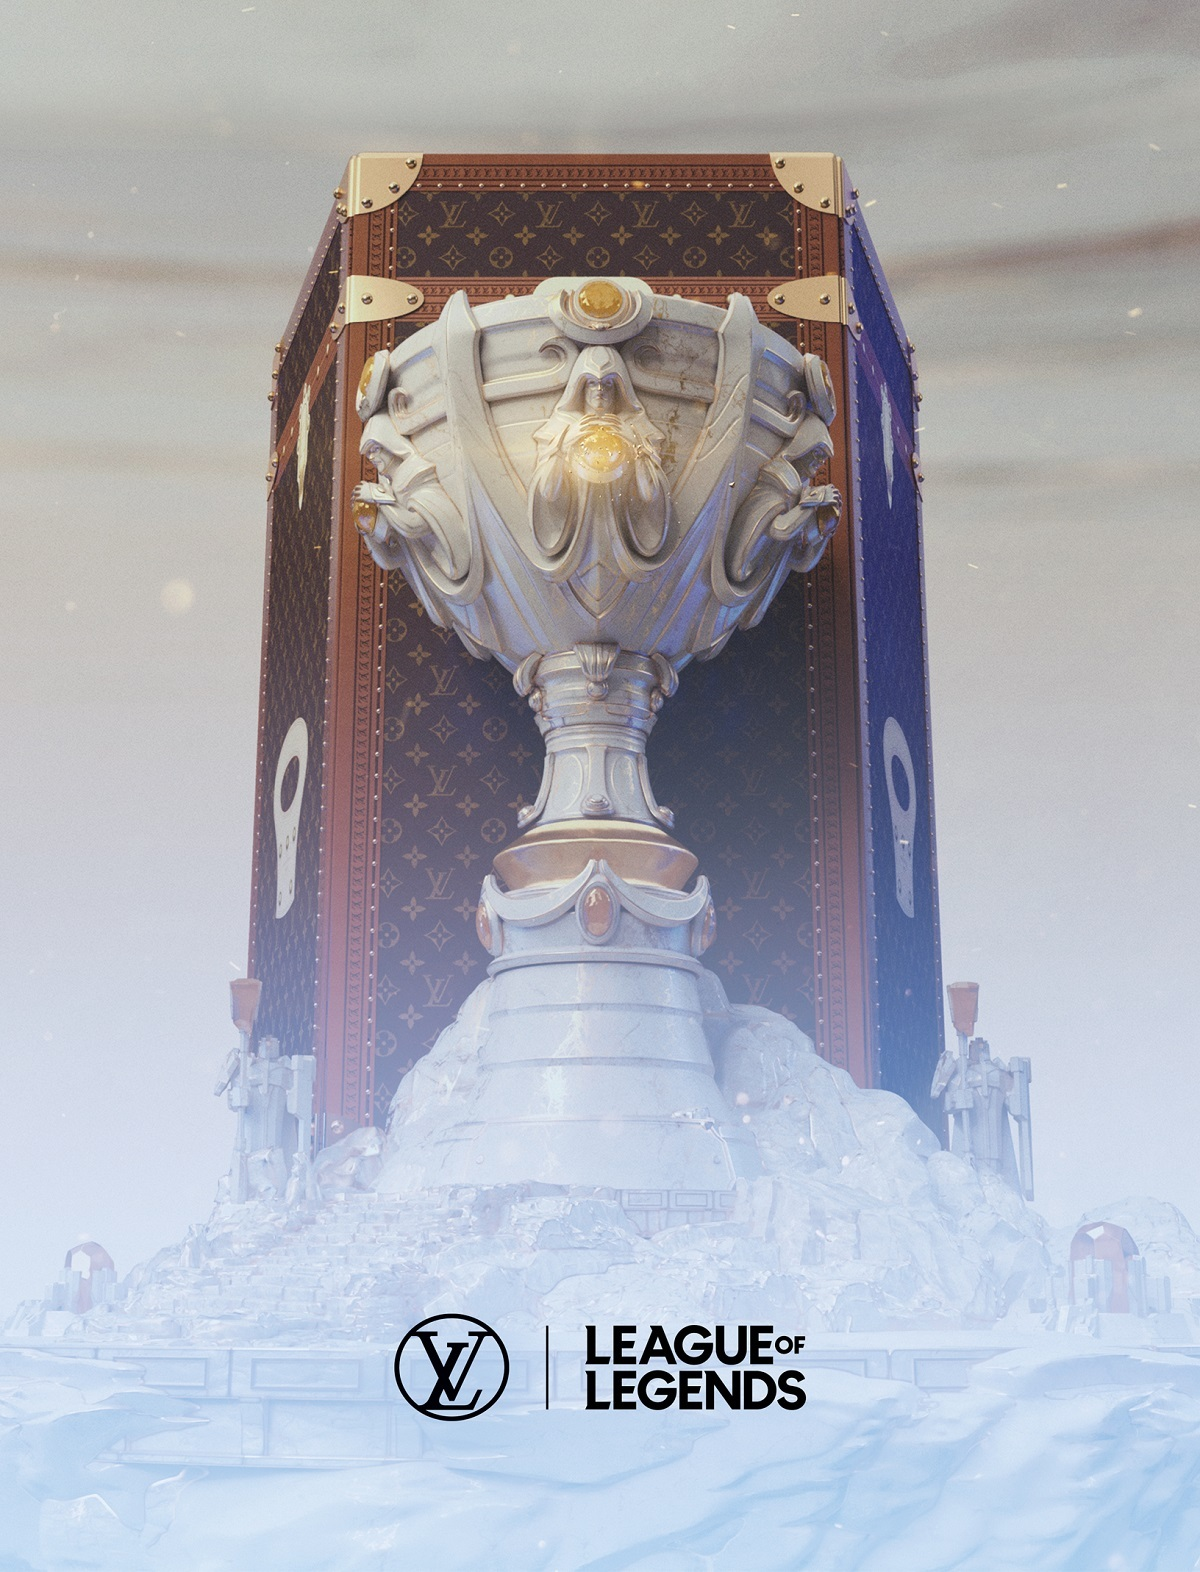 French luxury fashion house Louis Vuitton produces the LoL Worlds trophy case. (Riot Games)